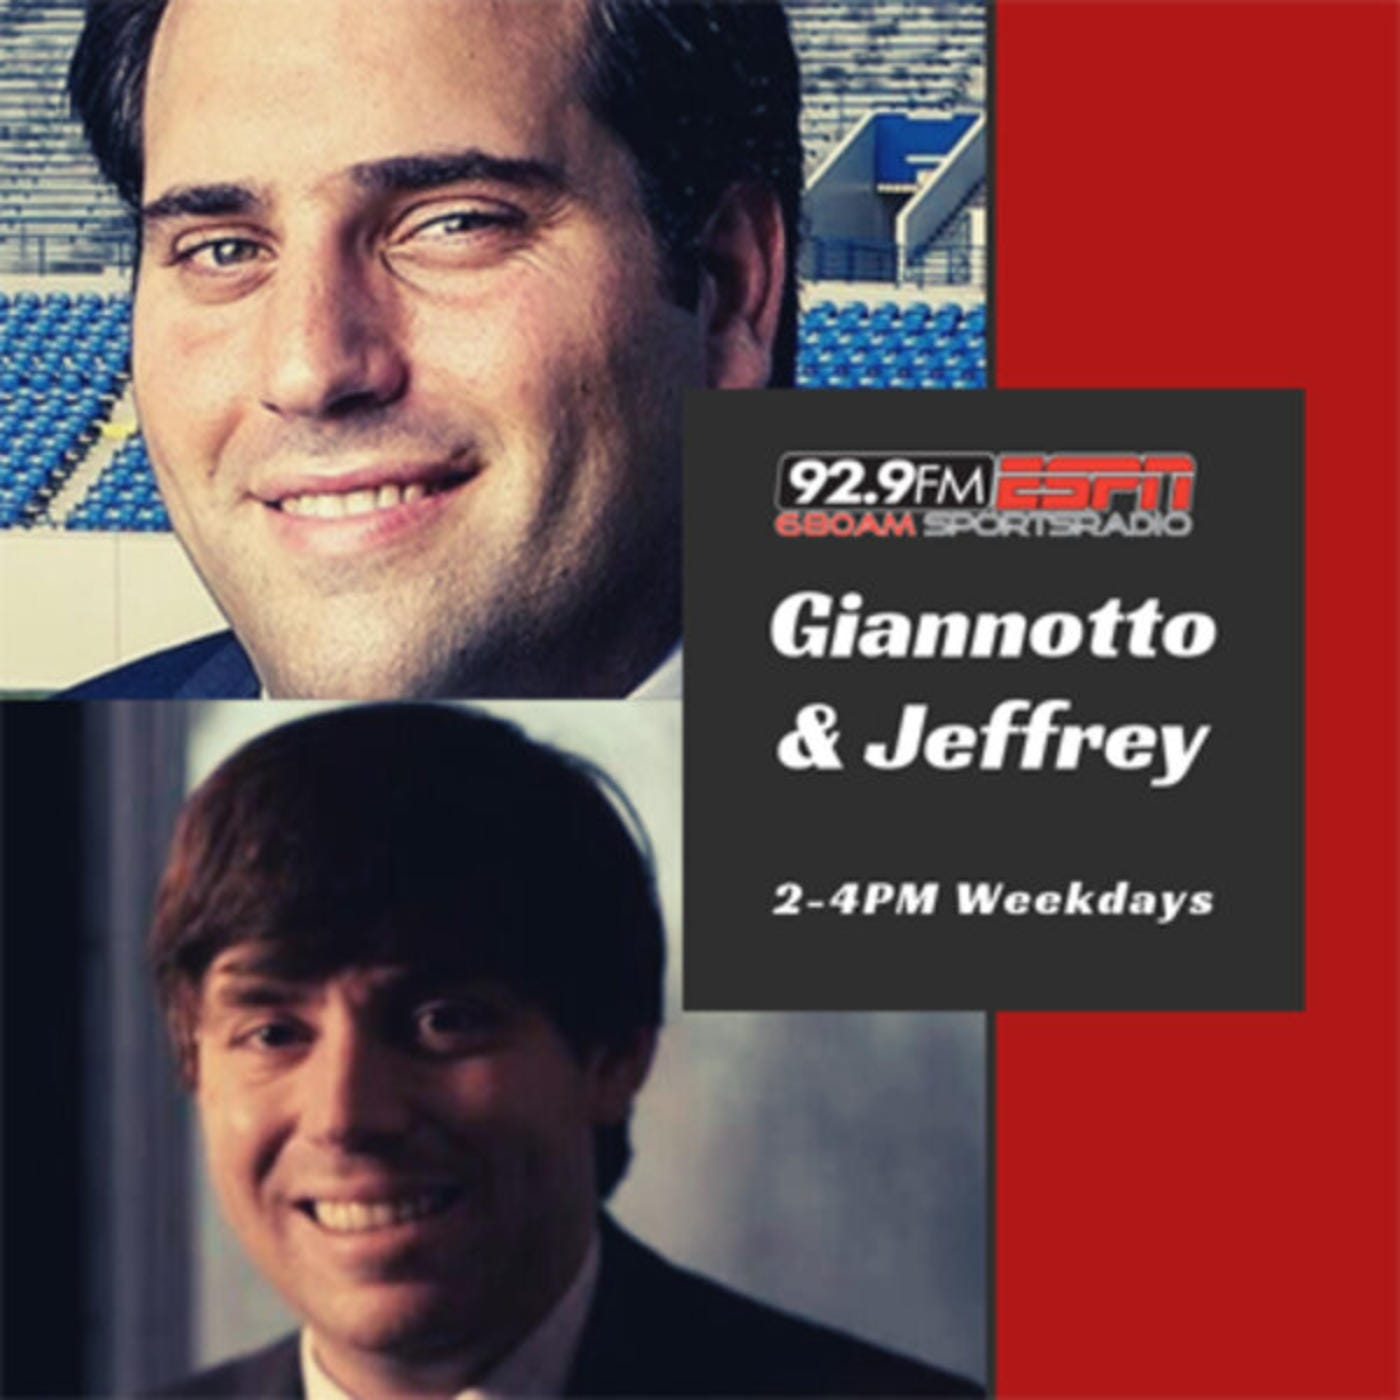 Giannotto & Jeffrey Show